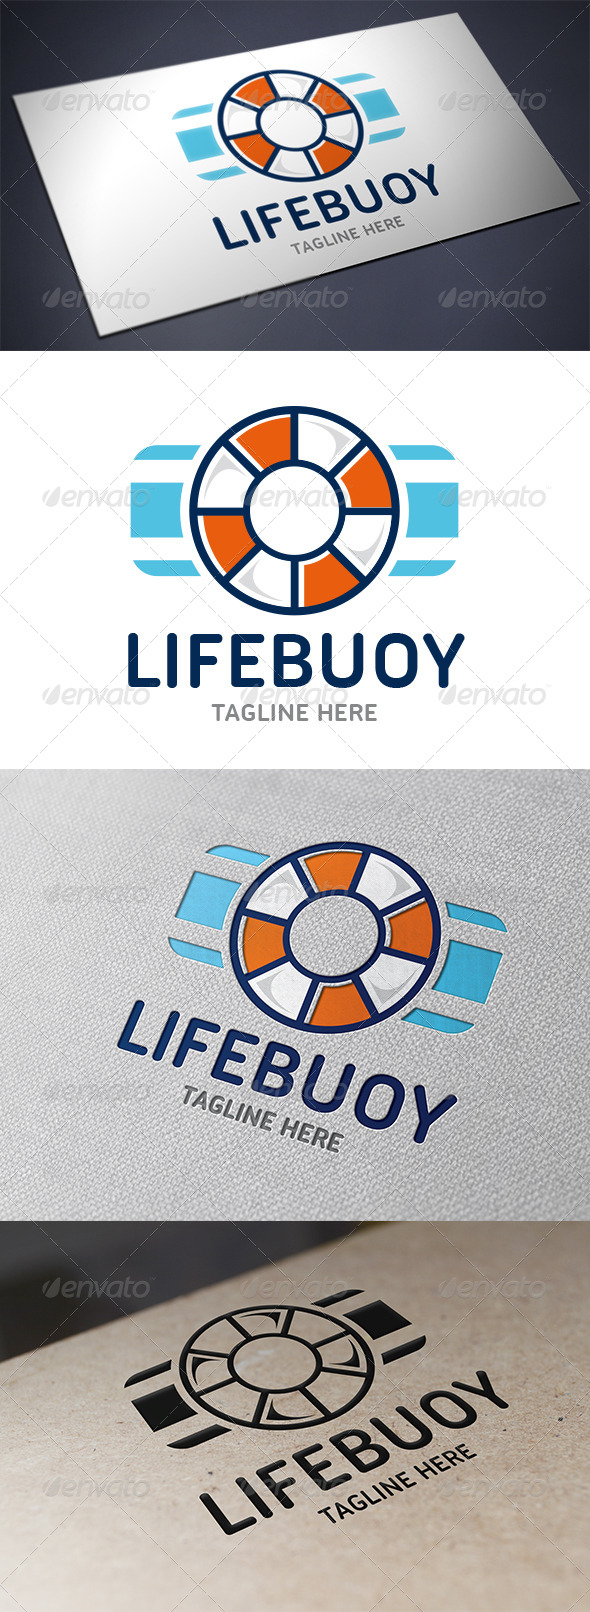 GraphicRiver Lifebuoy Logo Template 5706298